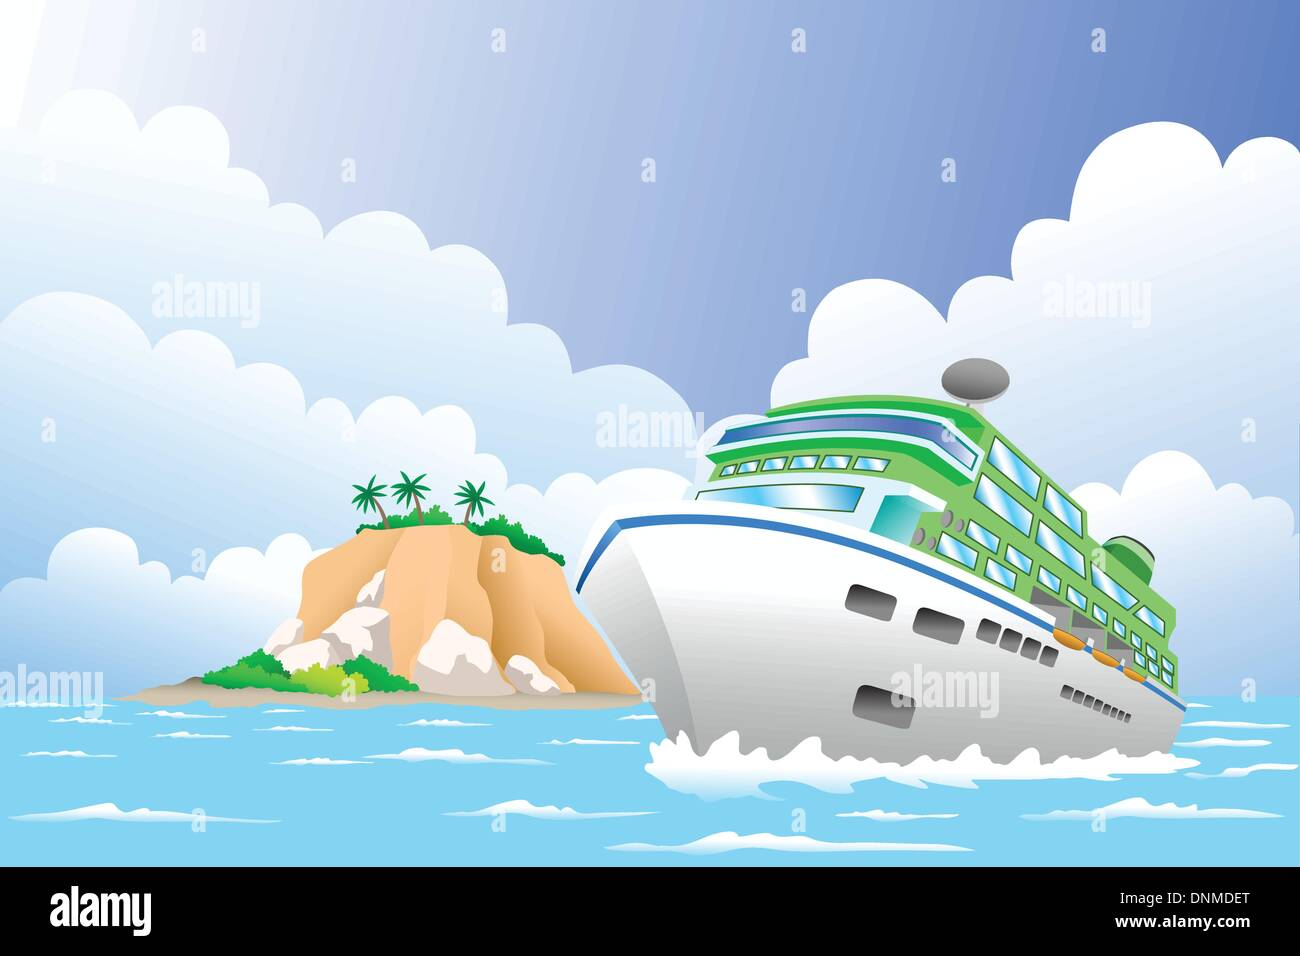 A vector illustration of luxury cruise ship in the sea for travel concept - Stock Vector